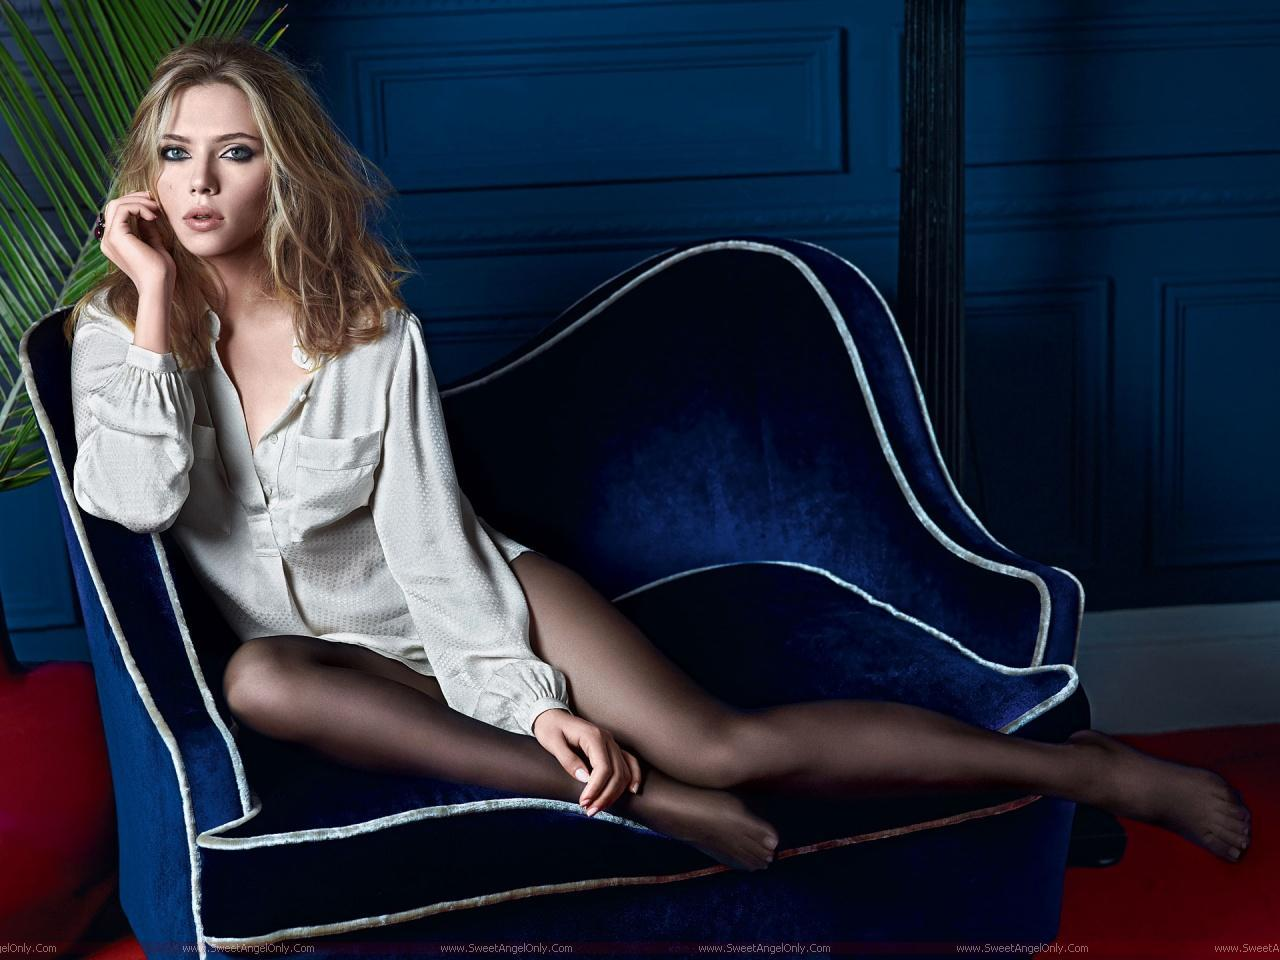 Scarlett Johansson Wallpaper: Booty Me Now: Scarlett Johansson-HD Wallpapers Hot